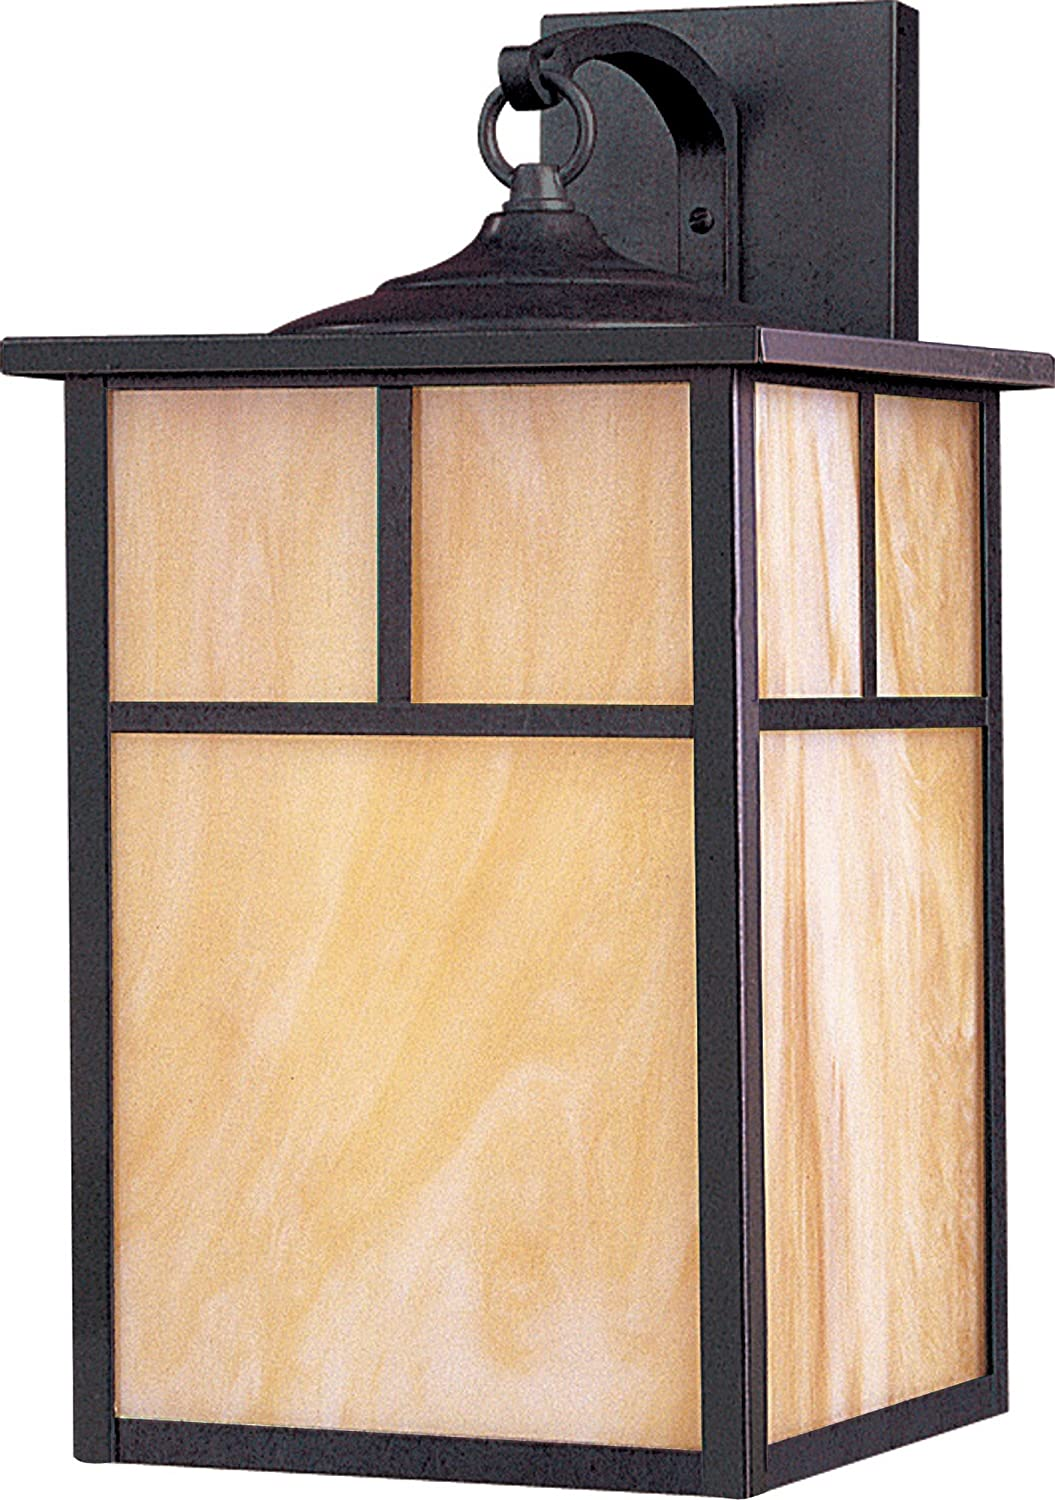 Maxim 4054HOBU Coldwater 1-Light Outdoor Wall Lantern, Burnished Finish, Honey Glass, MB Incandescent Incandescent Bulb , 100W Max., Dry Safety Rating, Standard Dimmable, Glass Shade Material, 5750 Rated Lumens